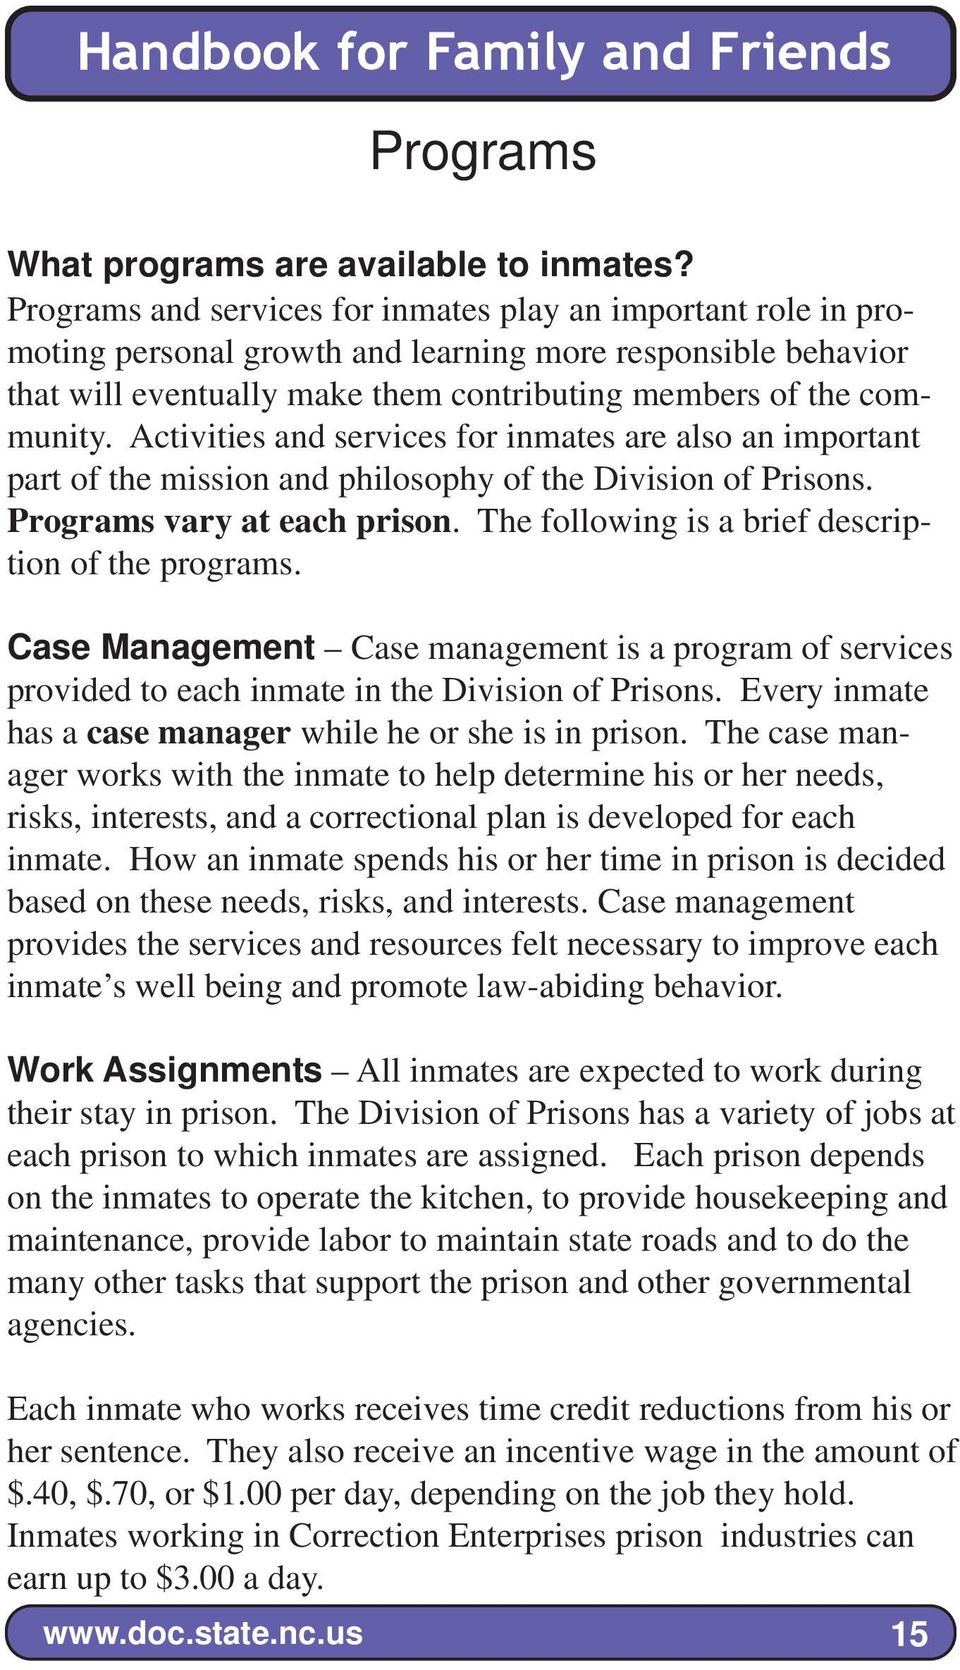 Activities and services for inmates are also an important part of the mission and philosophy of the Division of Prisons. Programs vary at each prison.